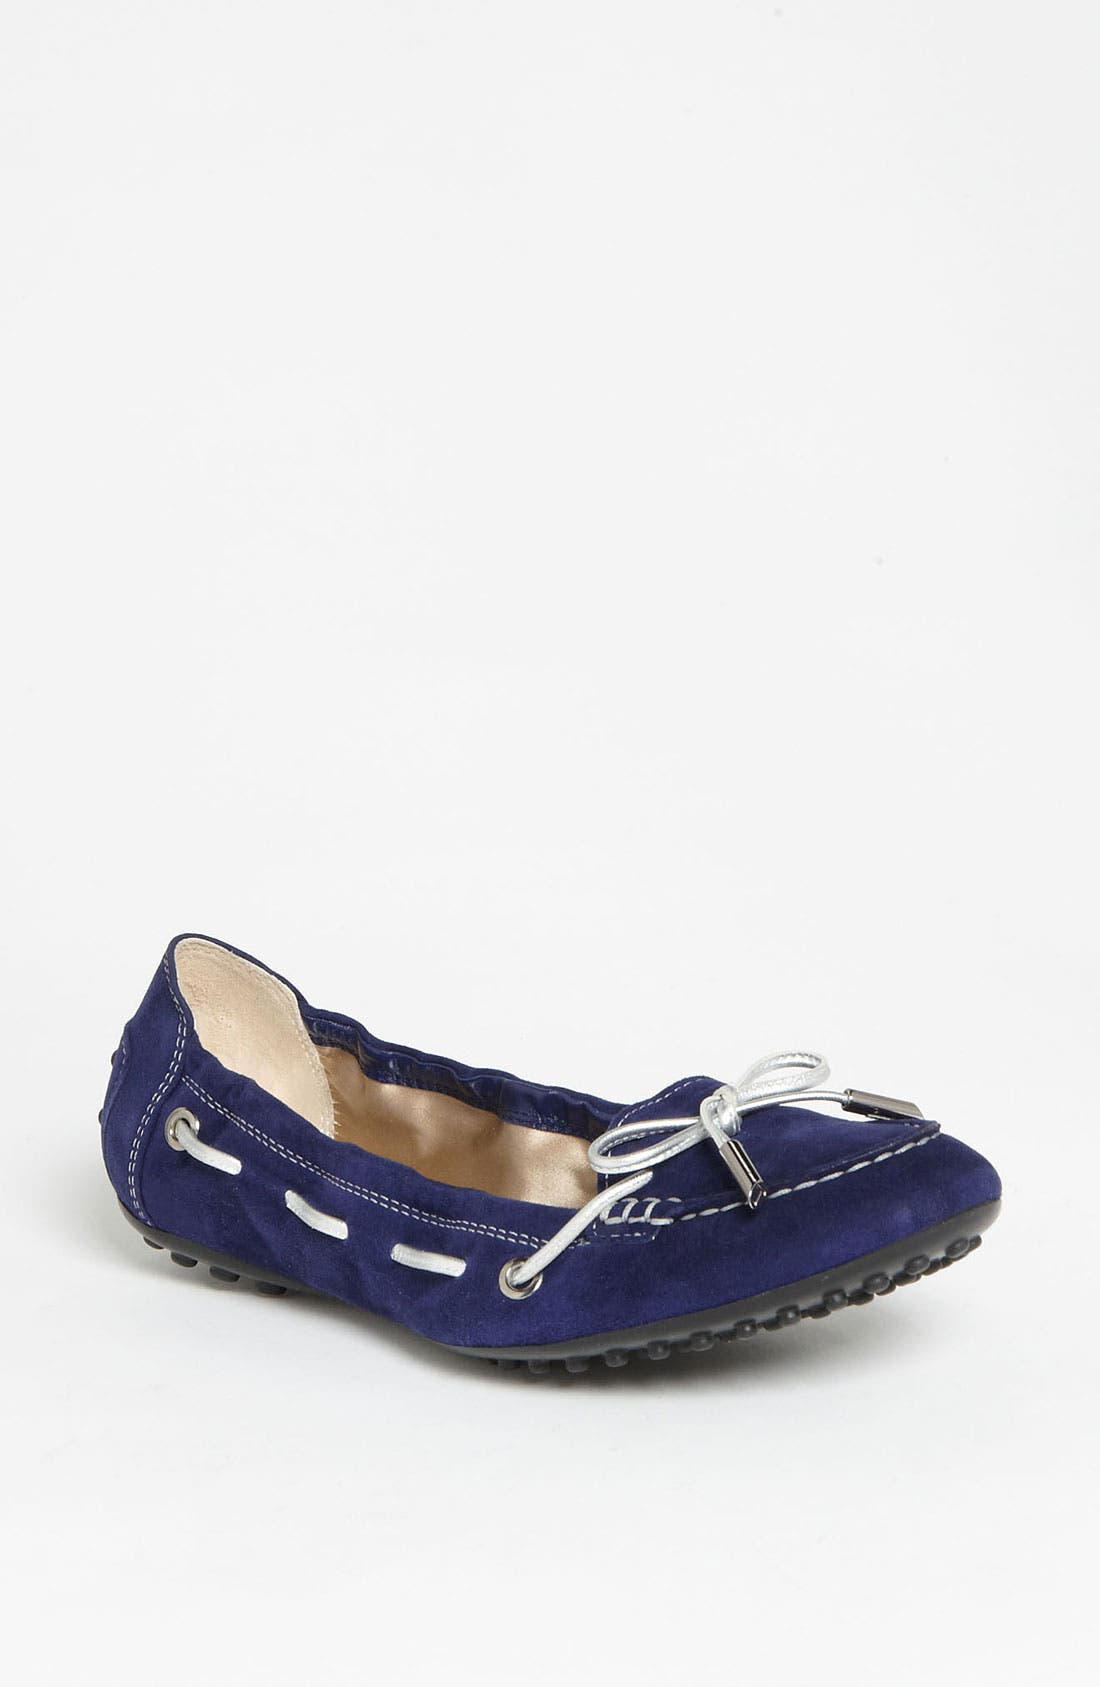 Main Image - Tod's 'Laccetto' Ballet Flat